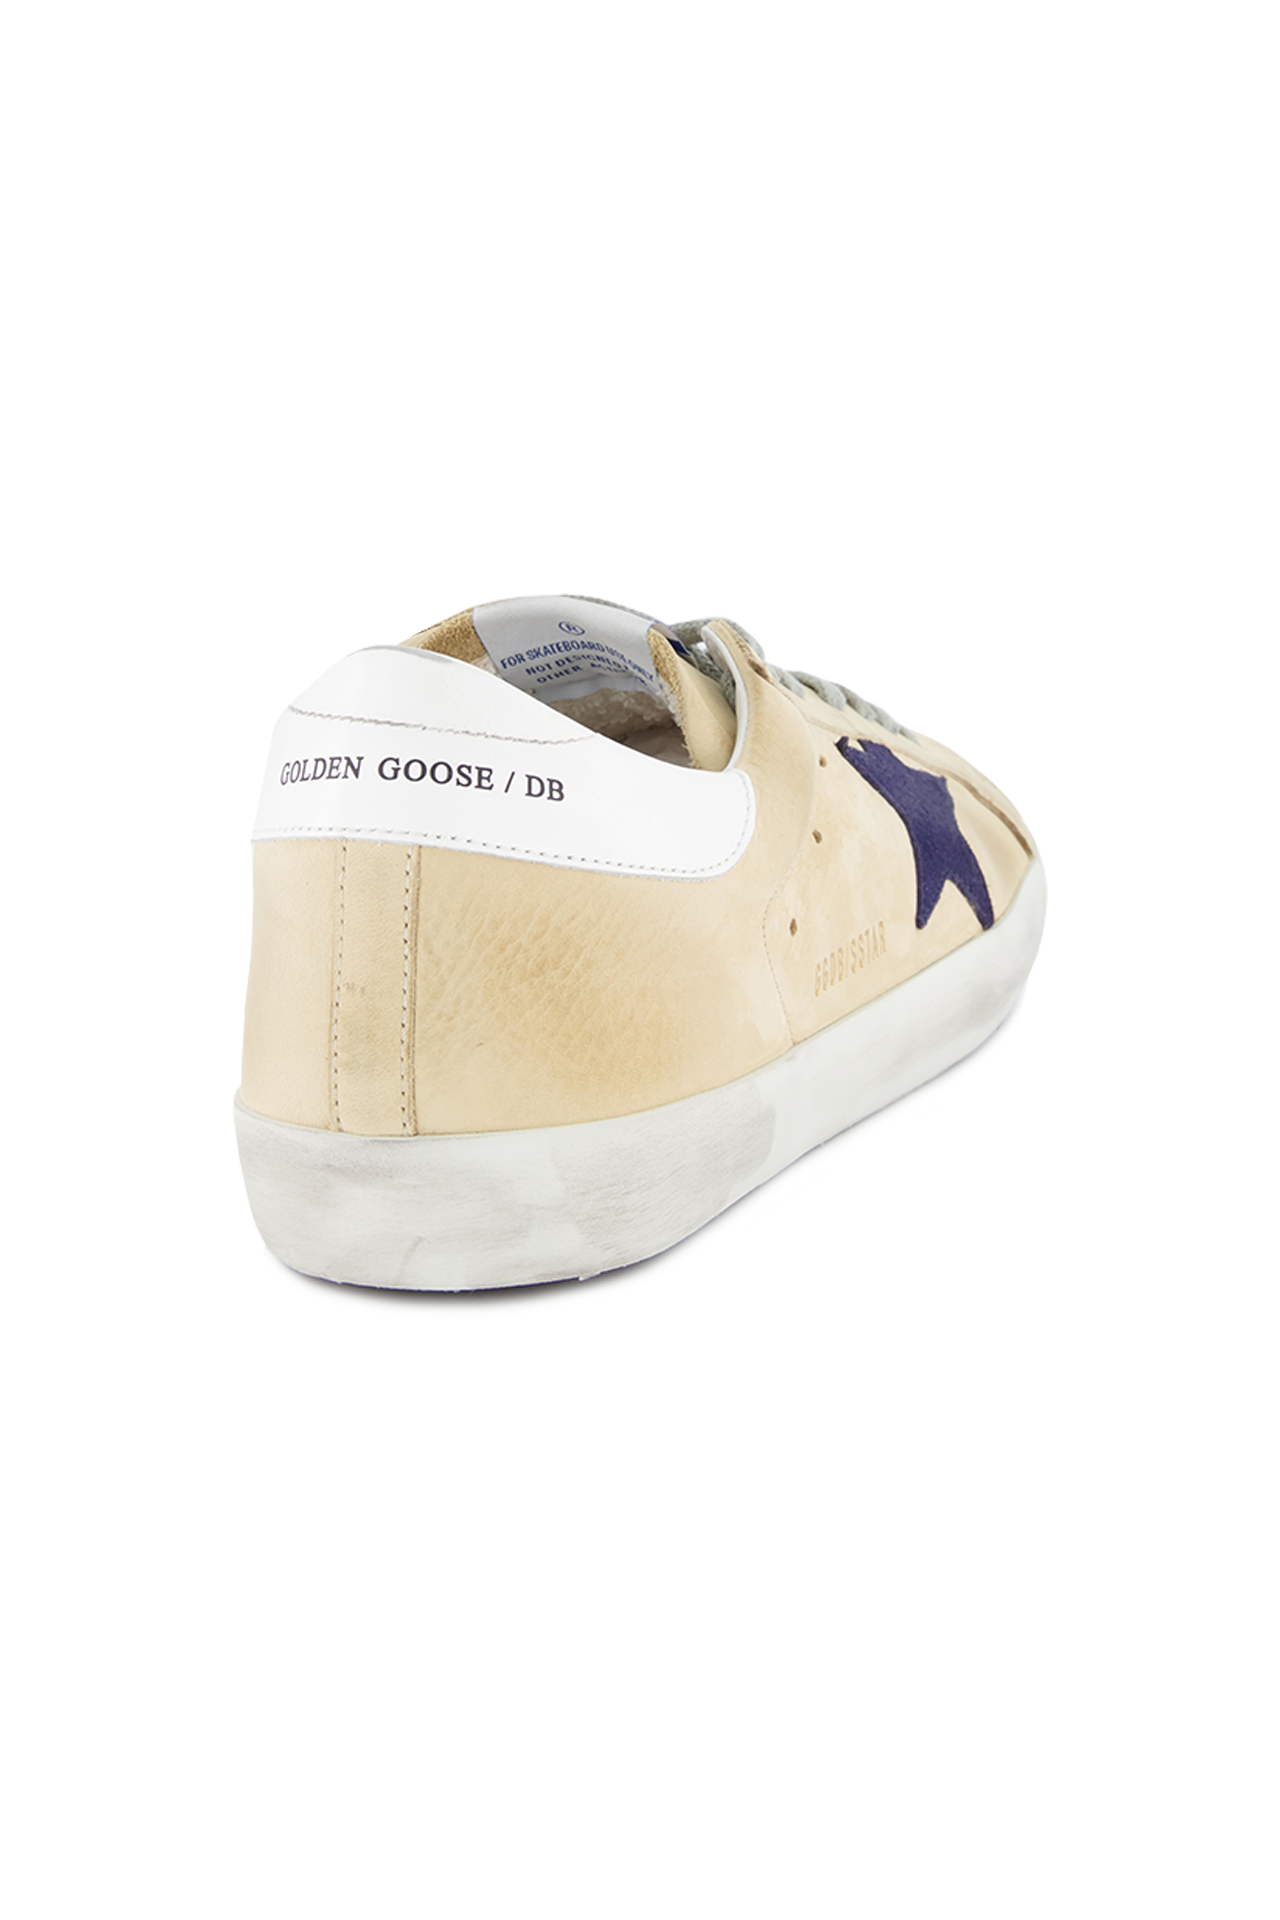 Back angled view image of Golden Goose Men's Superstar Low Top Sneakers Cream Nabuk